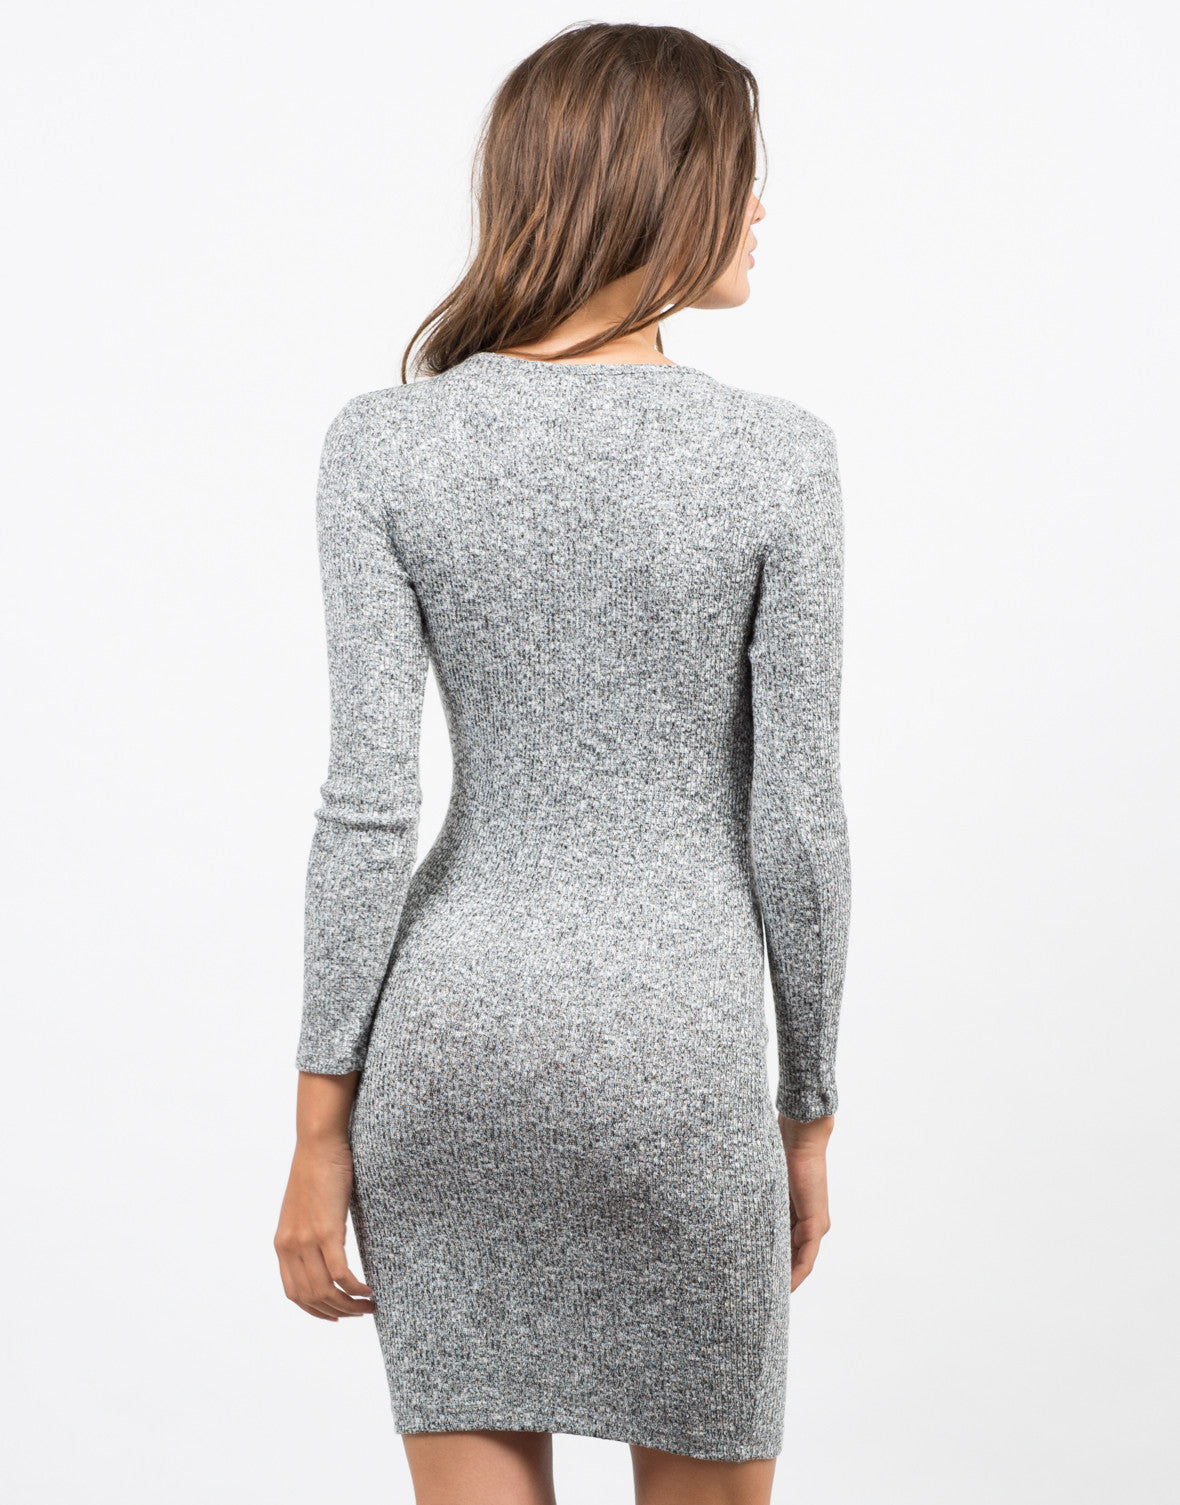 Back View of Lace-Up Sweater Dress